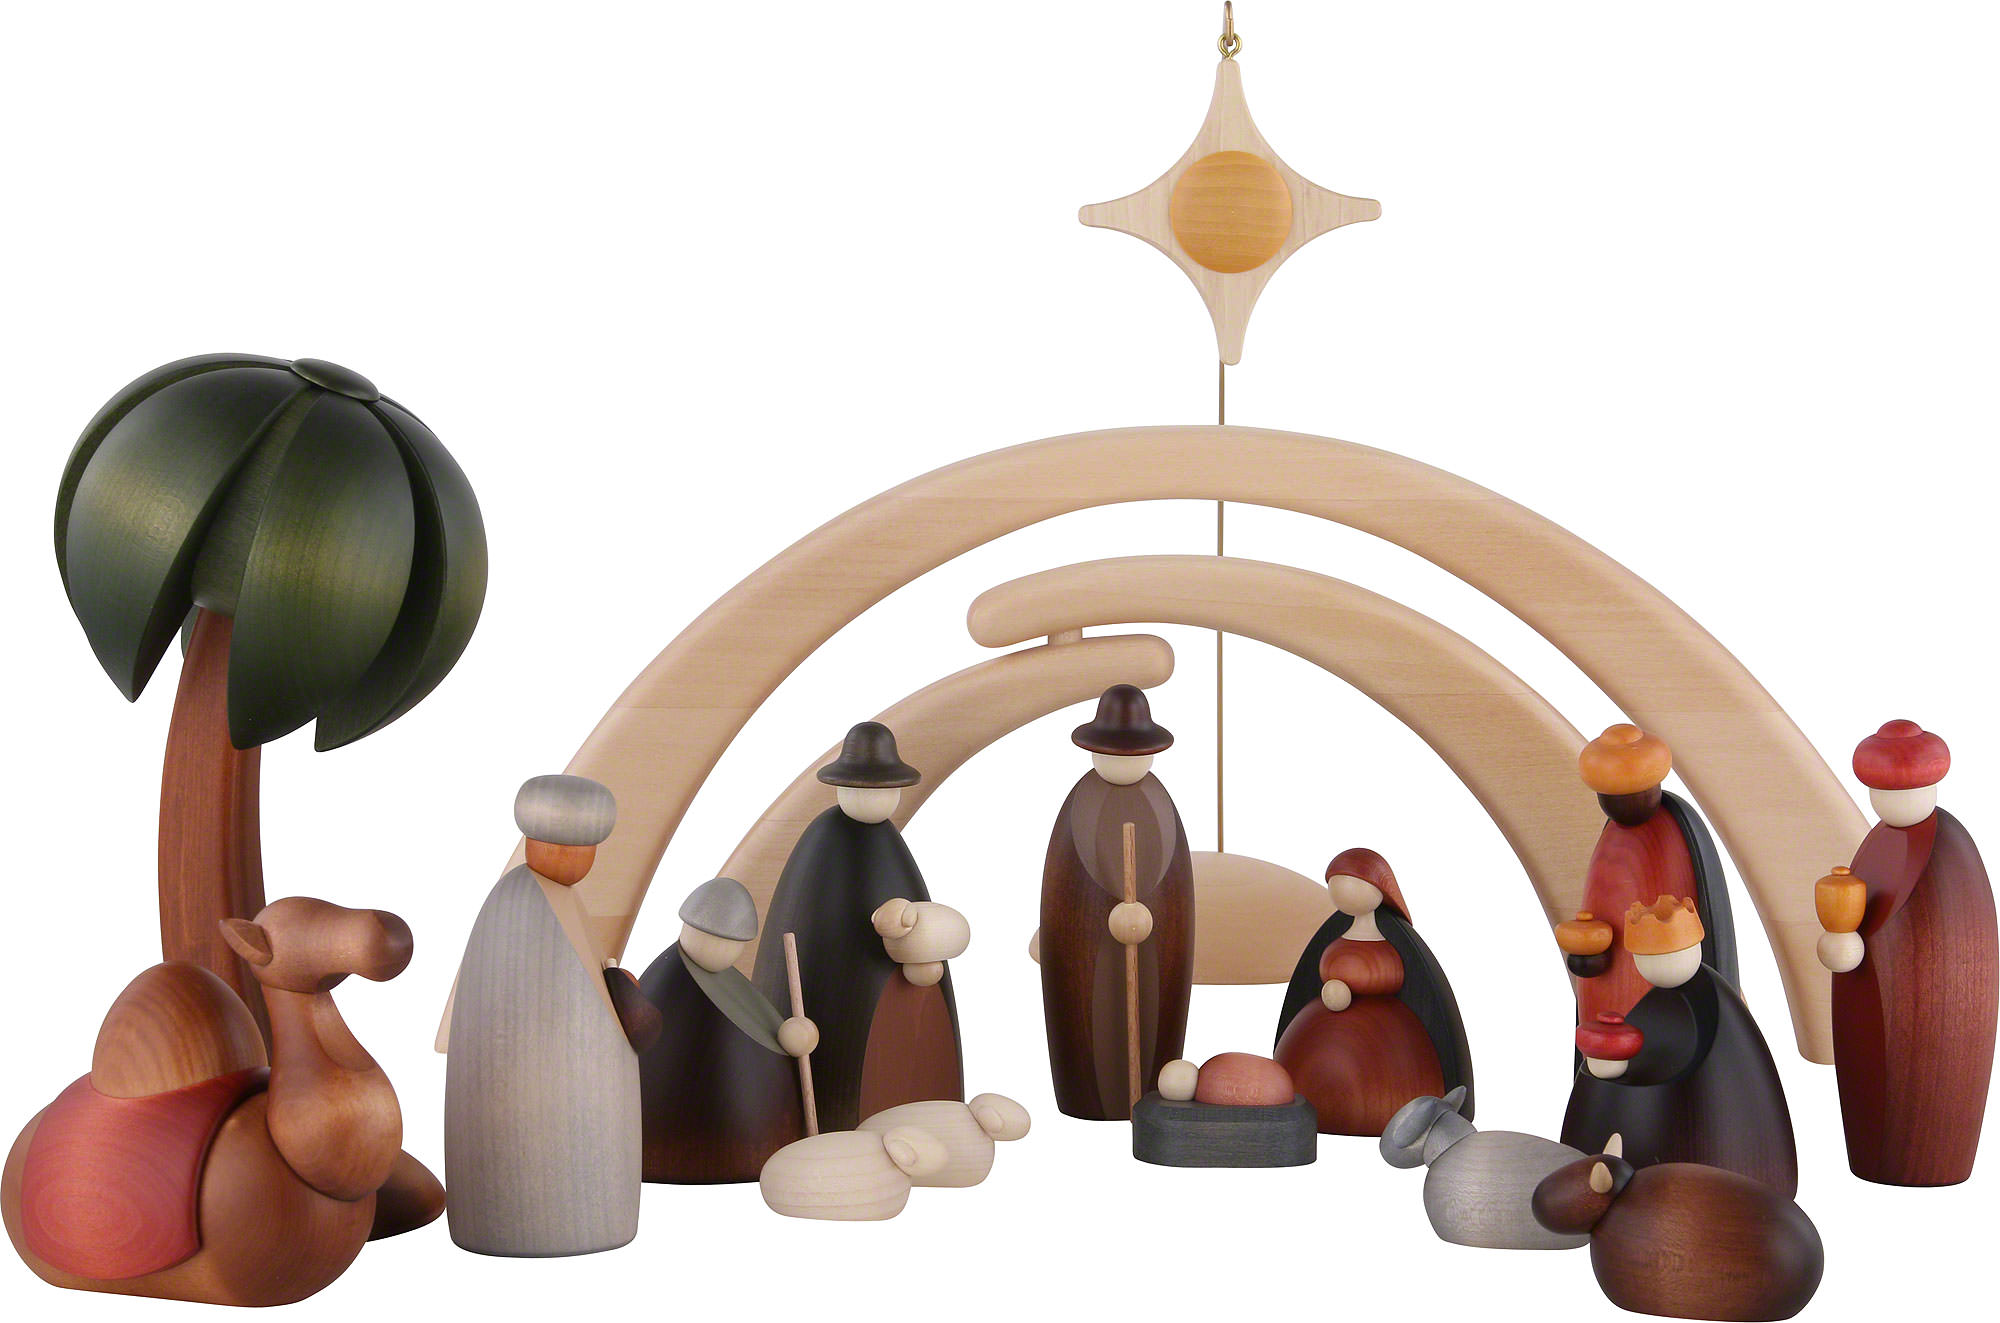 nativity set of 17 pieces including stable and star by bj rn k hler kunsthandwerk. Black Bedroom Furniture Sets. Home Design Ideas